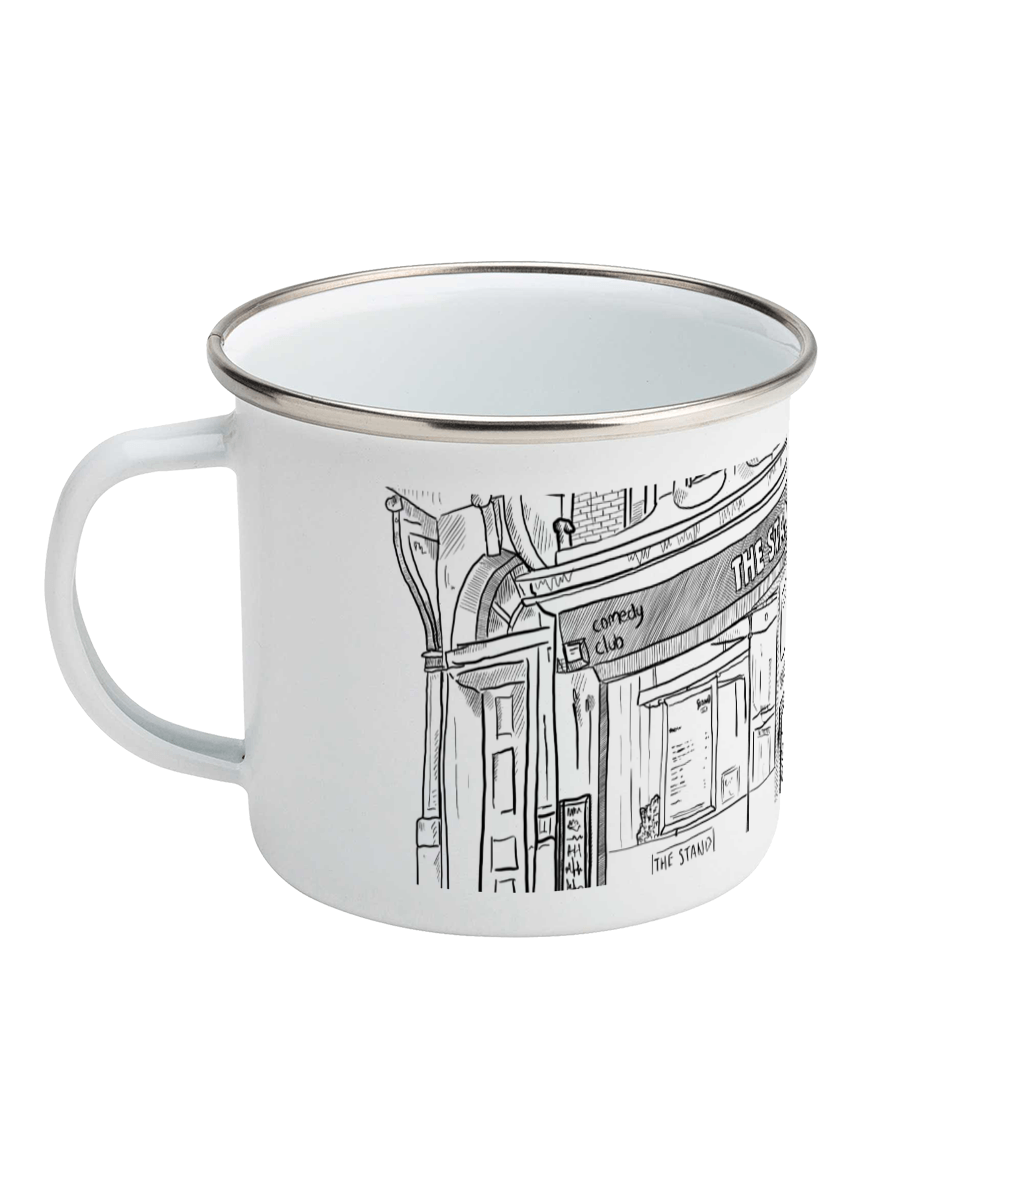 Matt Reed Illustration | Enamel Mug | The Stand Newcastle